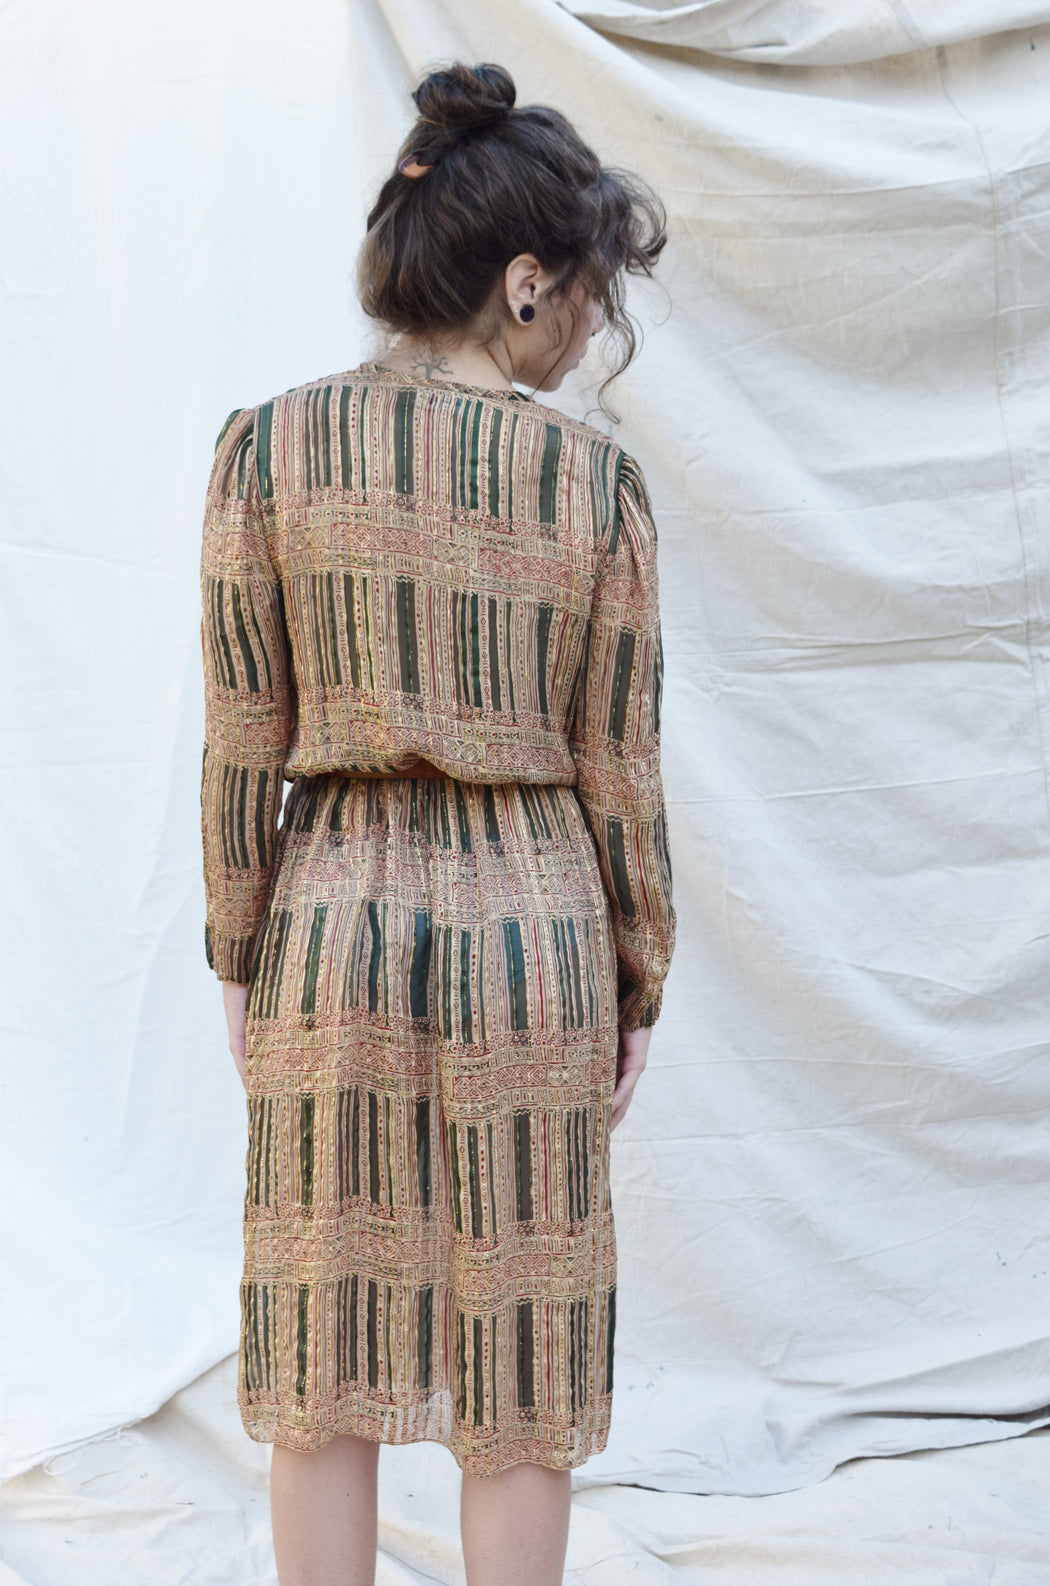 Silk + Gold Dress by Adrianna Papell | 1980s | S/M